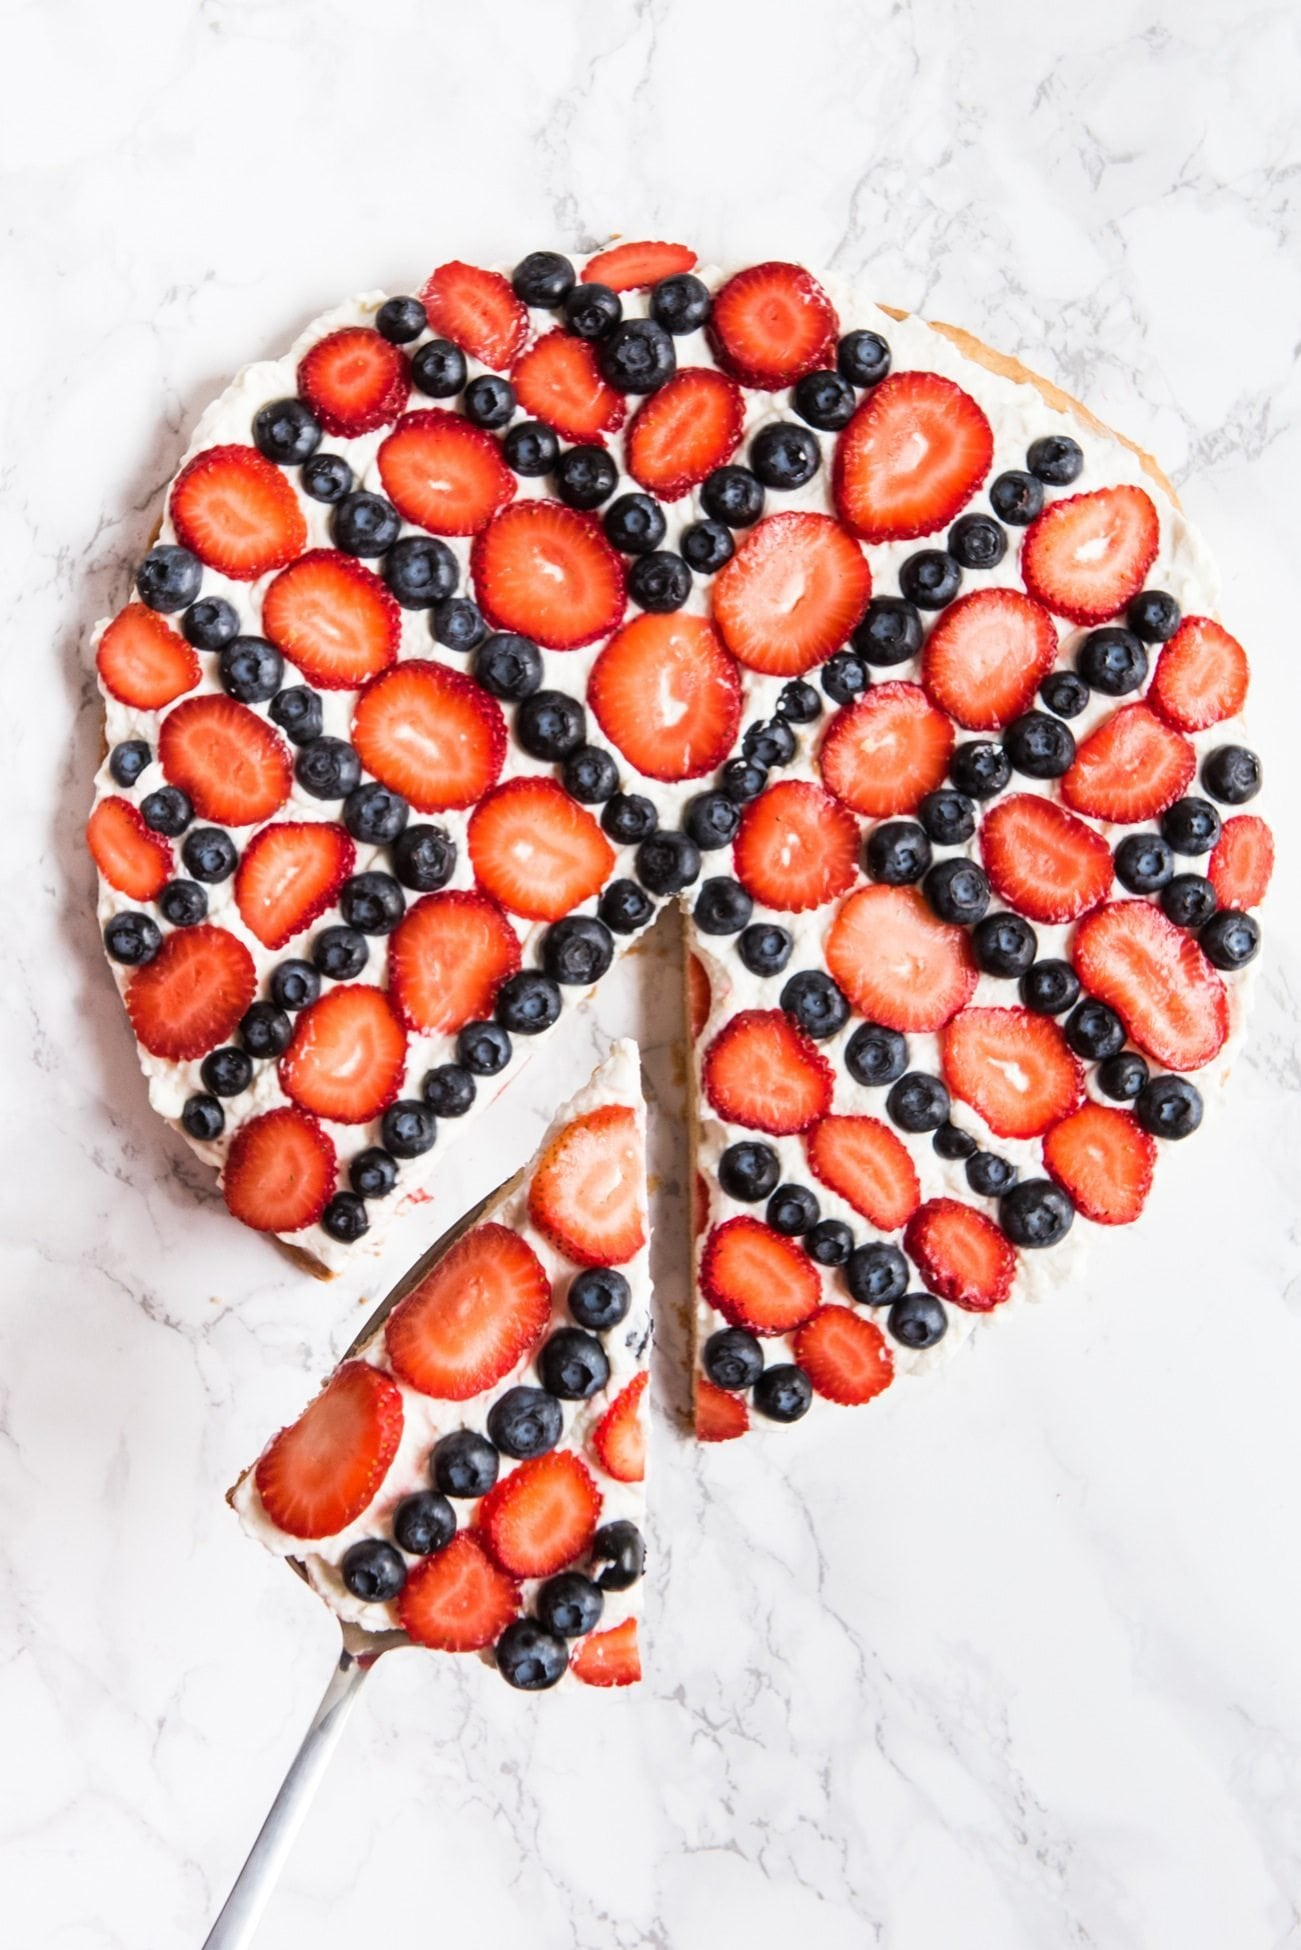 Red, White and Blue Fruit Pizza | 4th of July party ideas, 4th of July desserts and more from @cydconverse